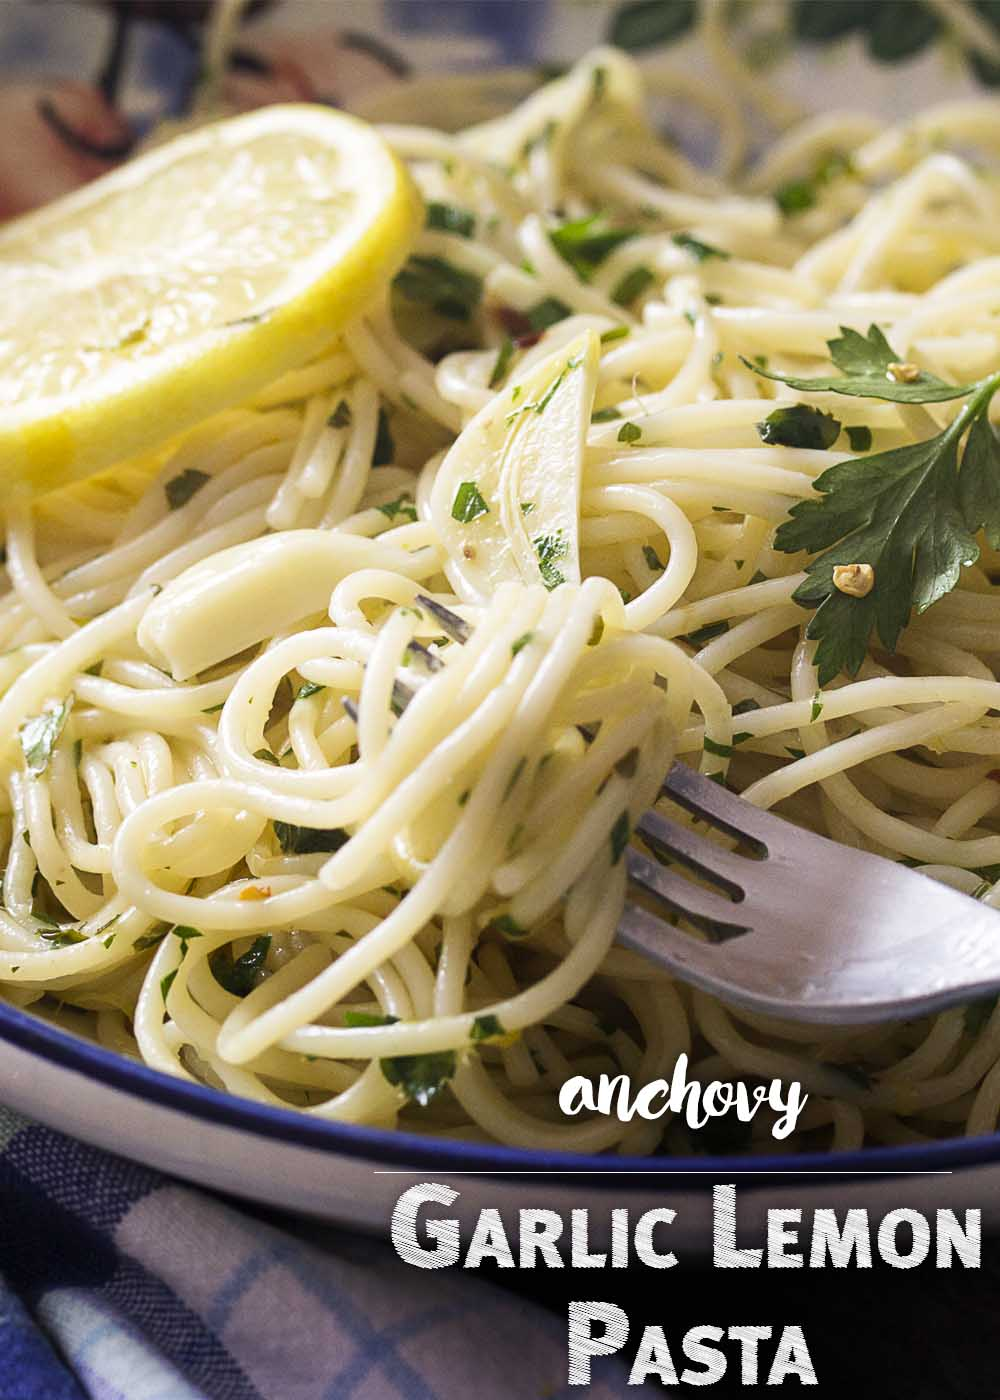 Garlic Lemon Pasta - Pasta with garlic and olive oil is simple and classic recipe which comes together quickly for a great weeknight meal. Add in some lemon juice and zest to give it brightness and anchovies to provide umami, and you'll have a pasta dish you'll want to make again and again.   justalittlebitofbacon.com #italianrecipes #pasta #pastarecipes #quickandeasy